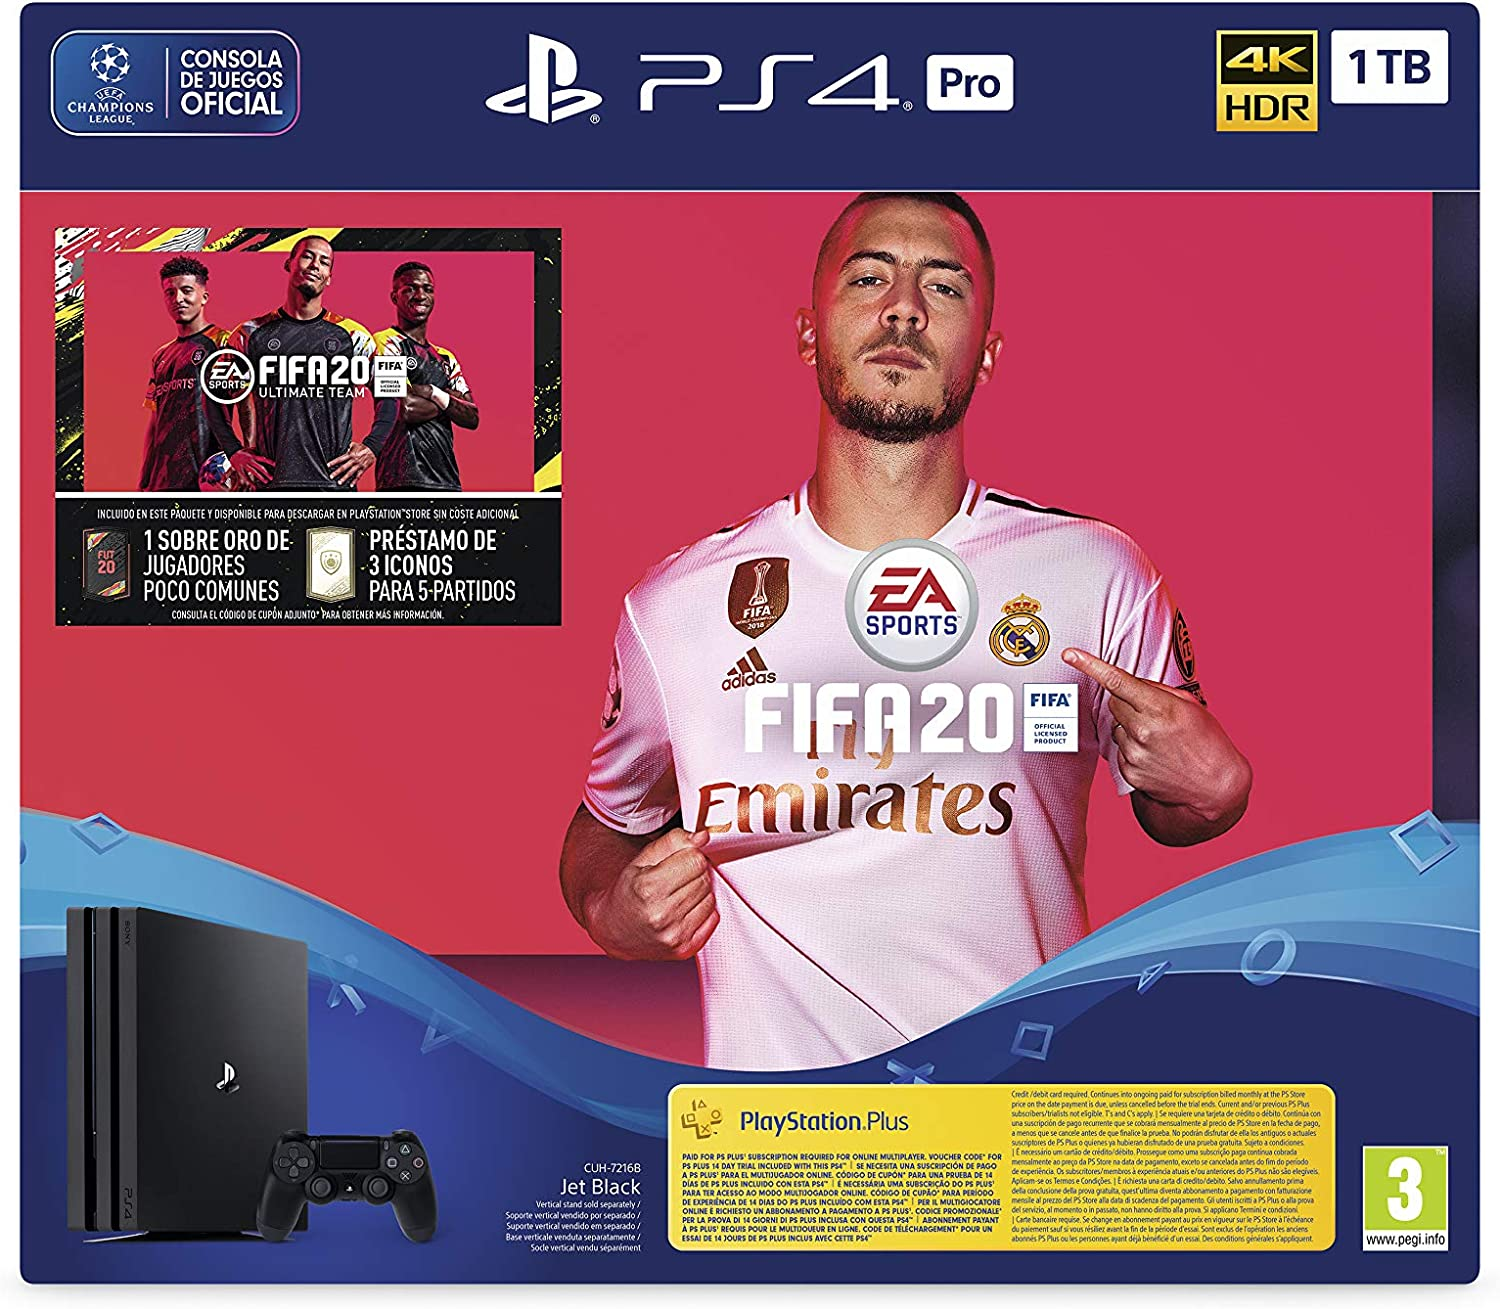 PlayStation 4 (PS4) +FIFA20/FUTVCH/Psy 14 días PS4 Pro 1TB G/SPA: Sony: Amazon.es: Videojuegos